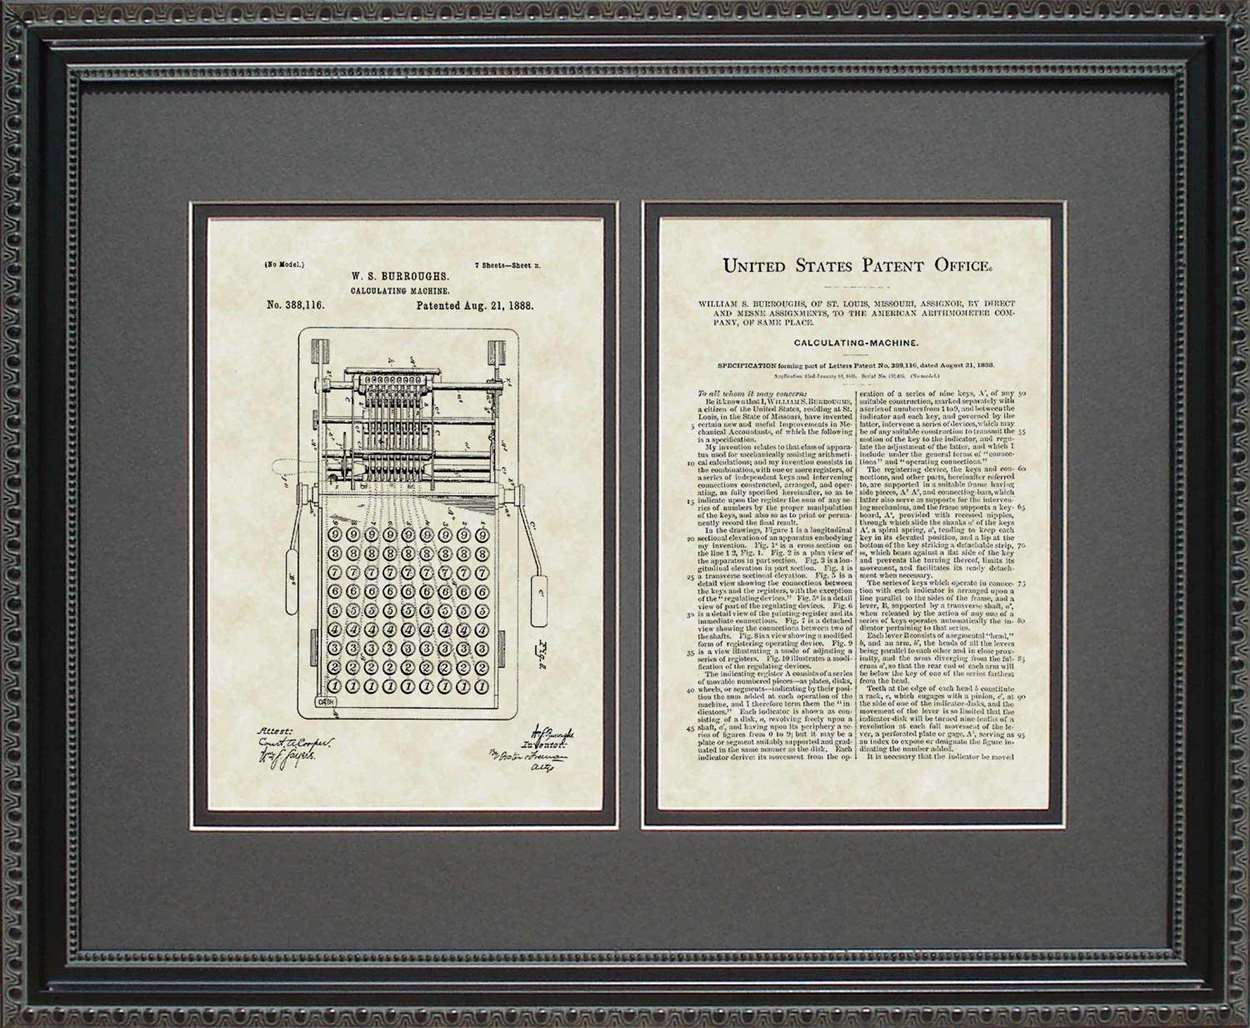 Calculator Patent, Art & Copy, Burroughs, 1888, 16x20